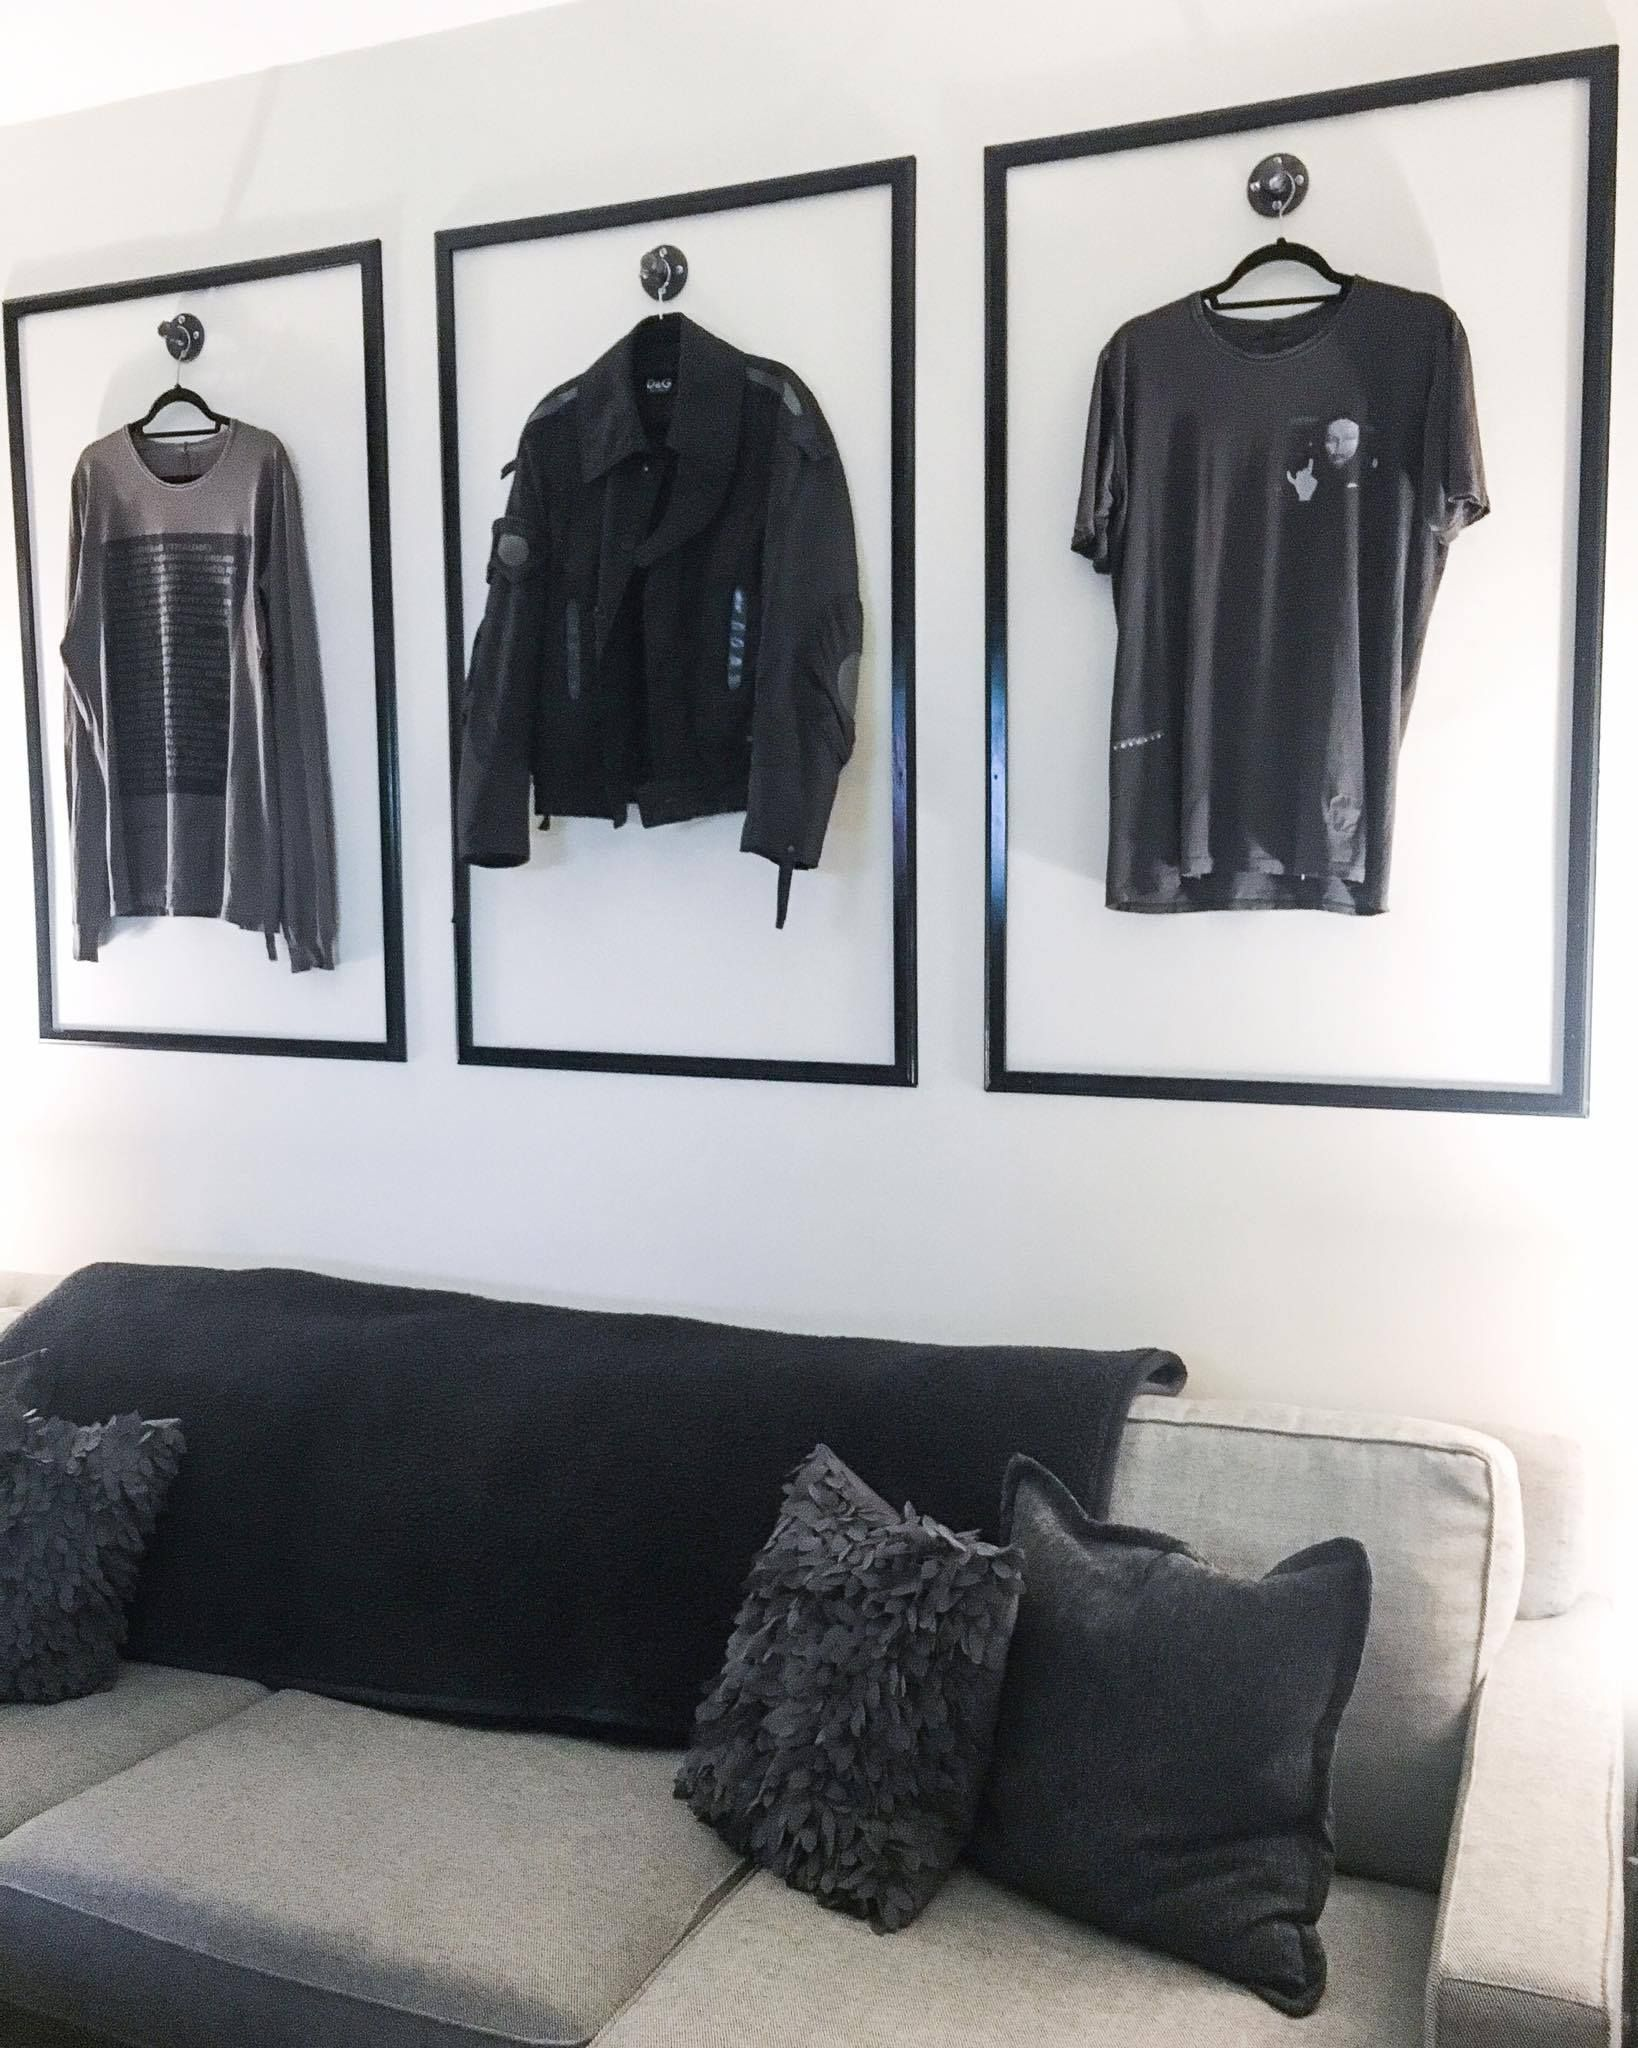 Set up these frames and hooks to display my clothes on